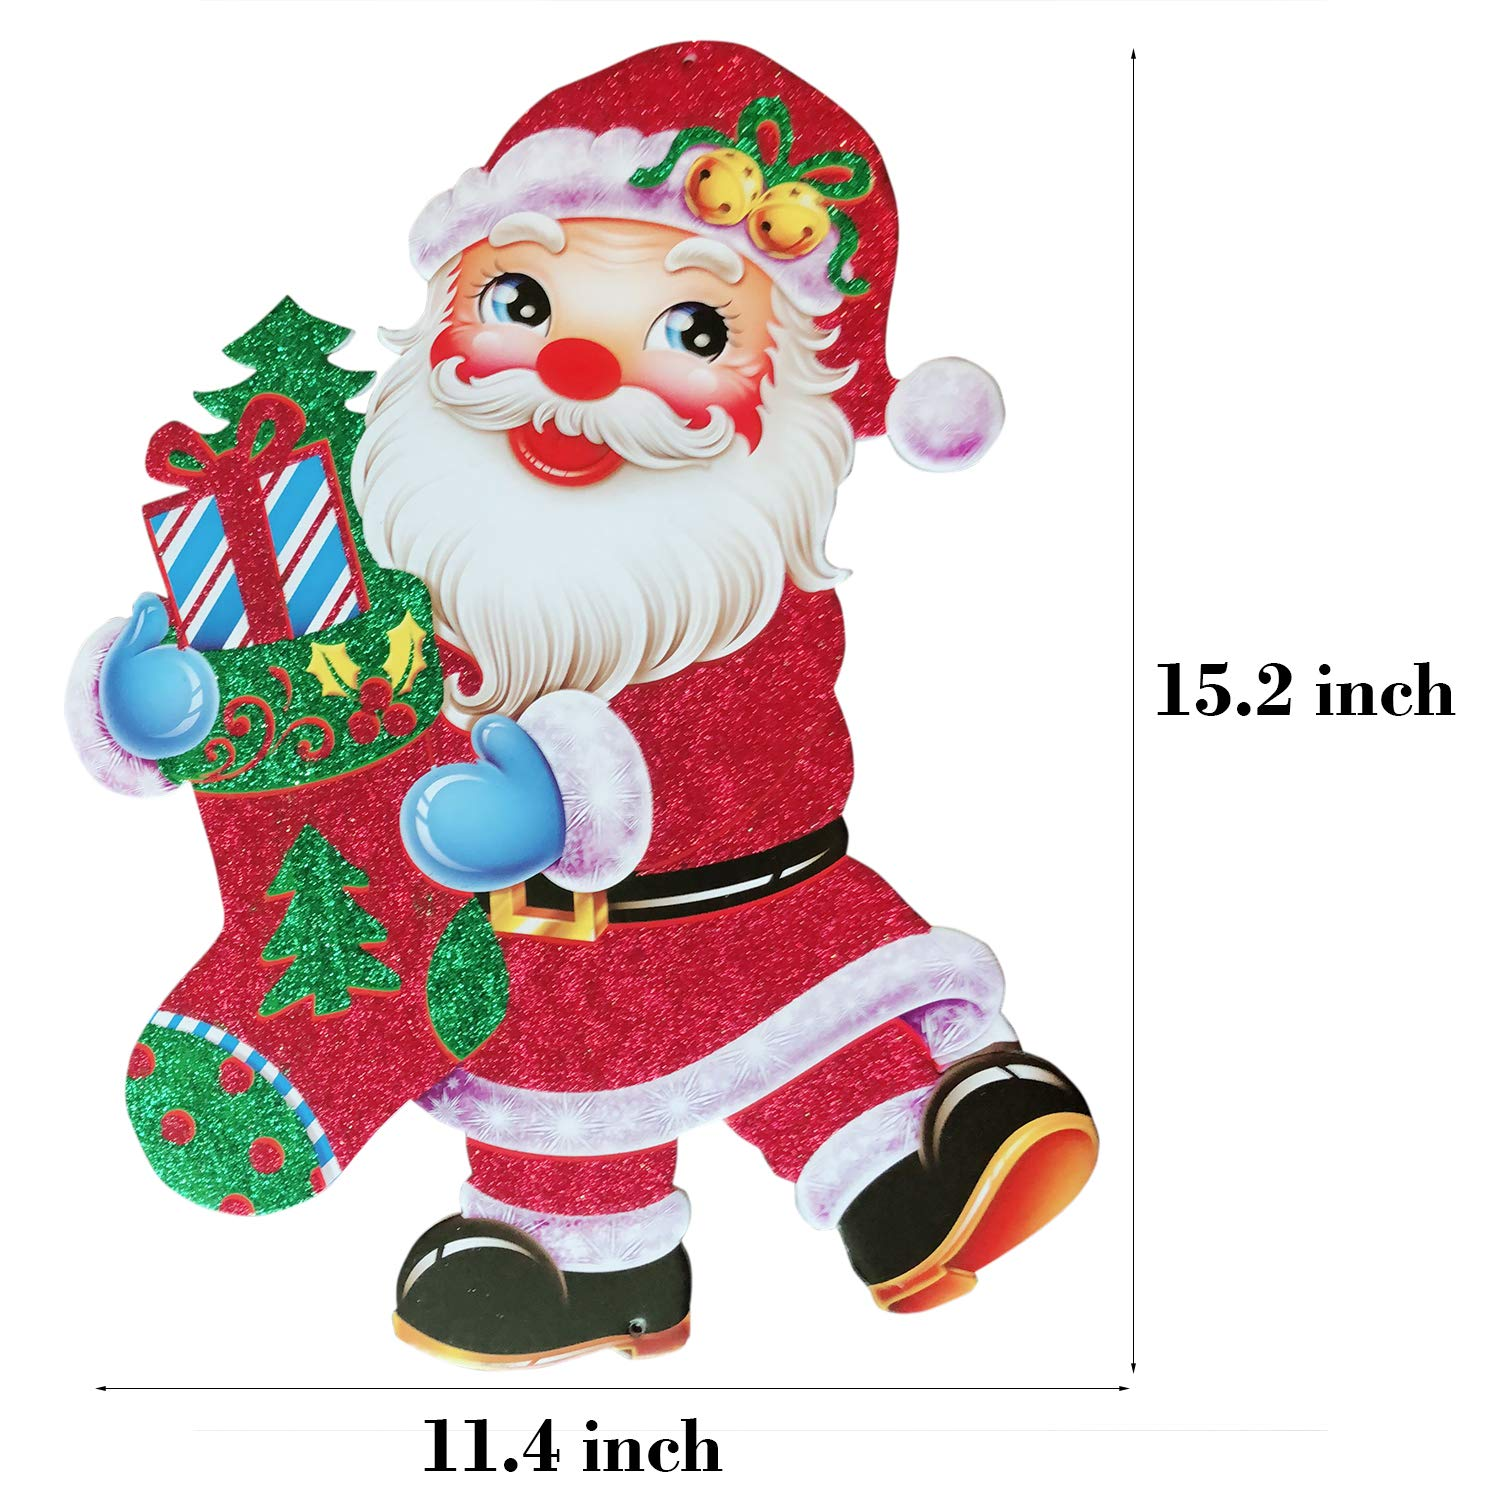 J 4pcs Christmas Door Hanging Sign Board Large Home Wall Hanging Decorations Ornaments Assorted Santa Claus Decorative Front Door Wreath for Holiday Party Indoor Outdoor Fireplace Show Window